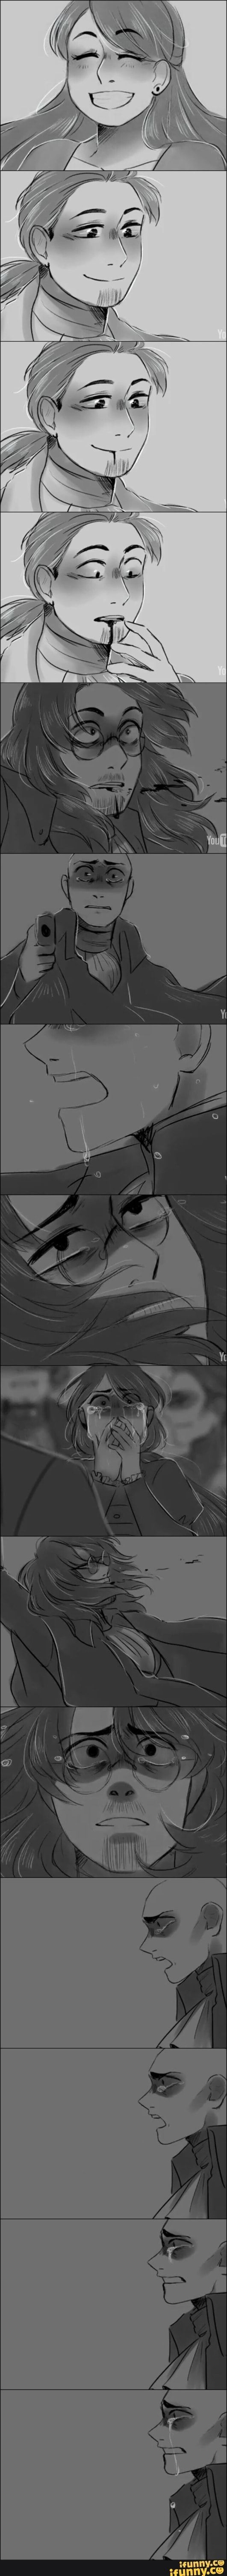 hhhhhhhh this hurts a lot i don't know the artist but i know it's from the Hamilton acapella animatic